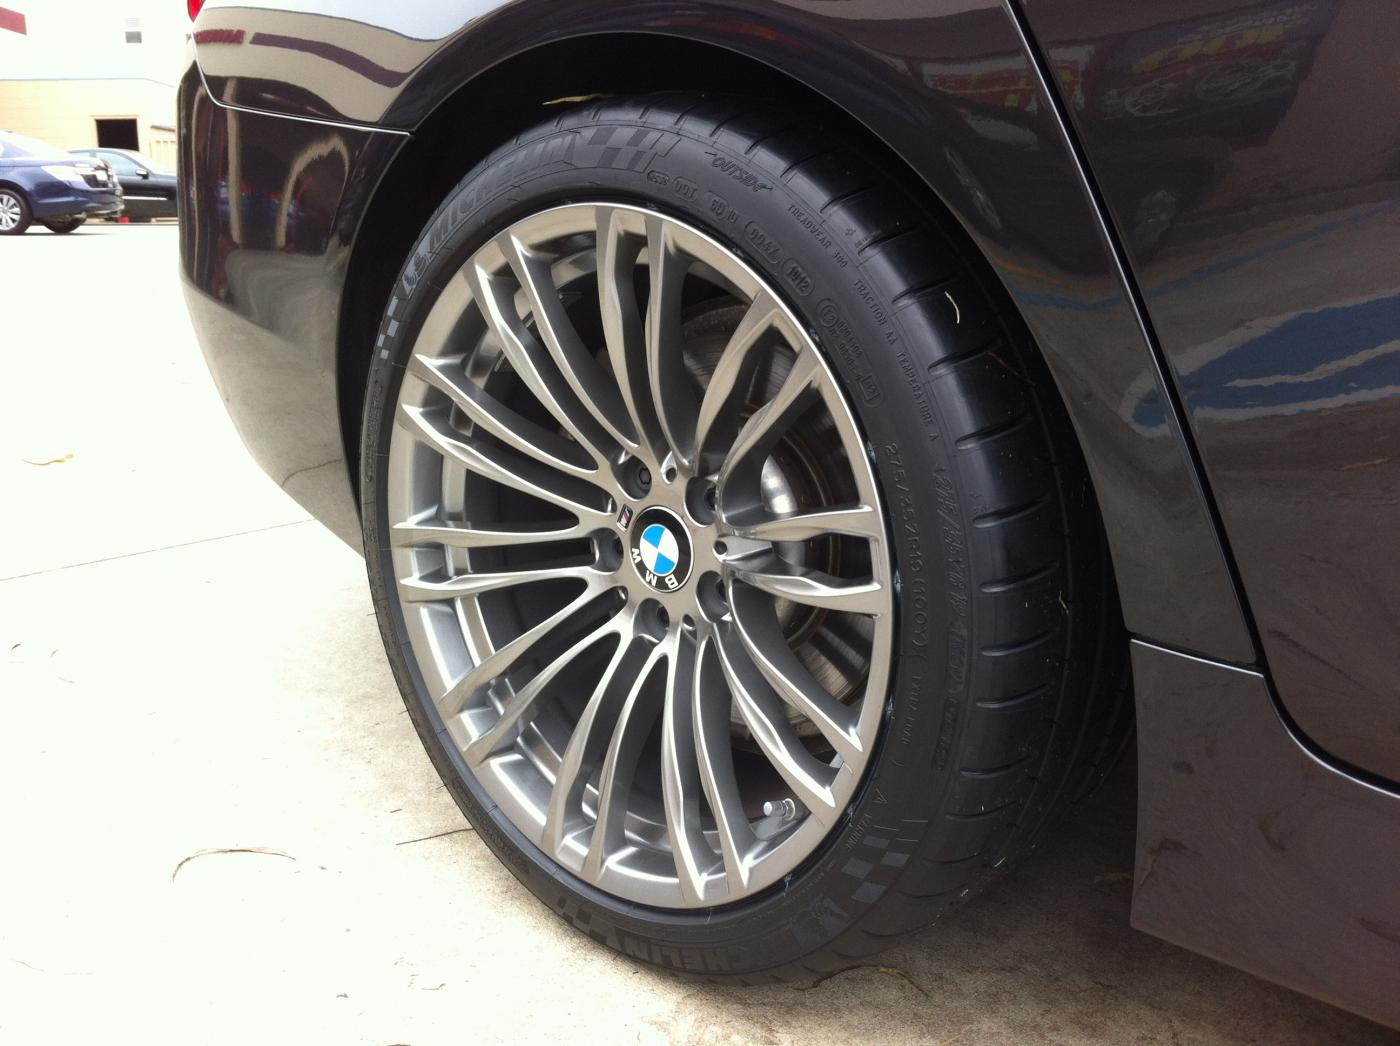 M5 Style 345 Wheels On An F10 528i